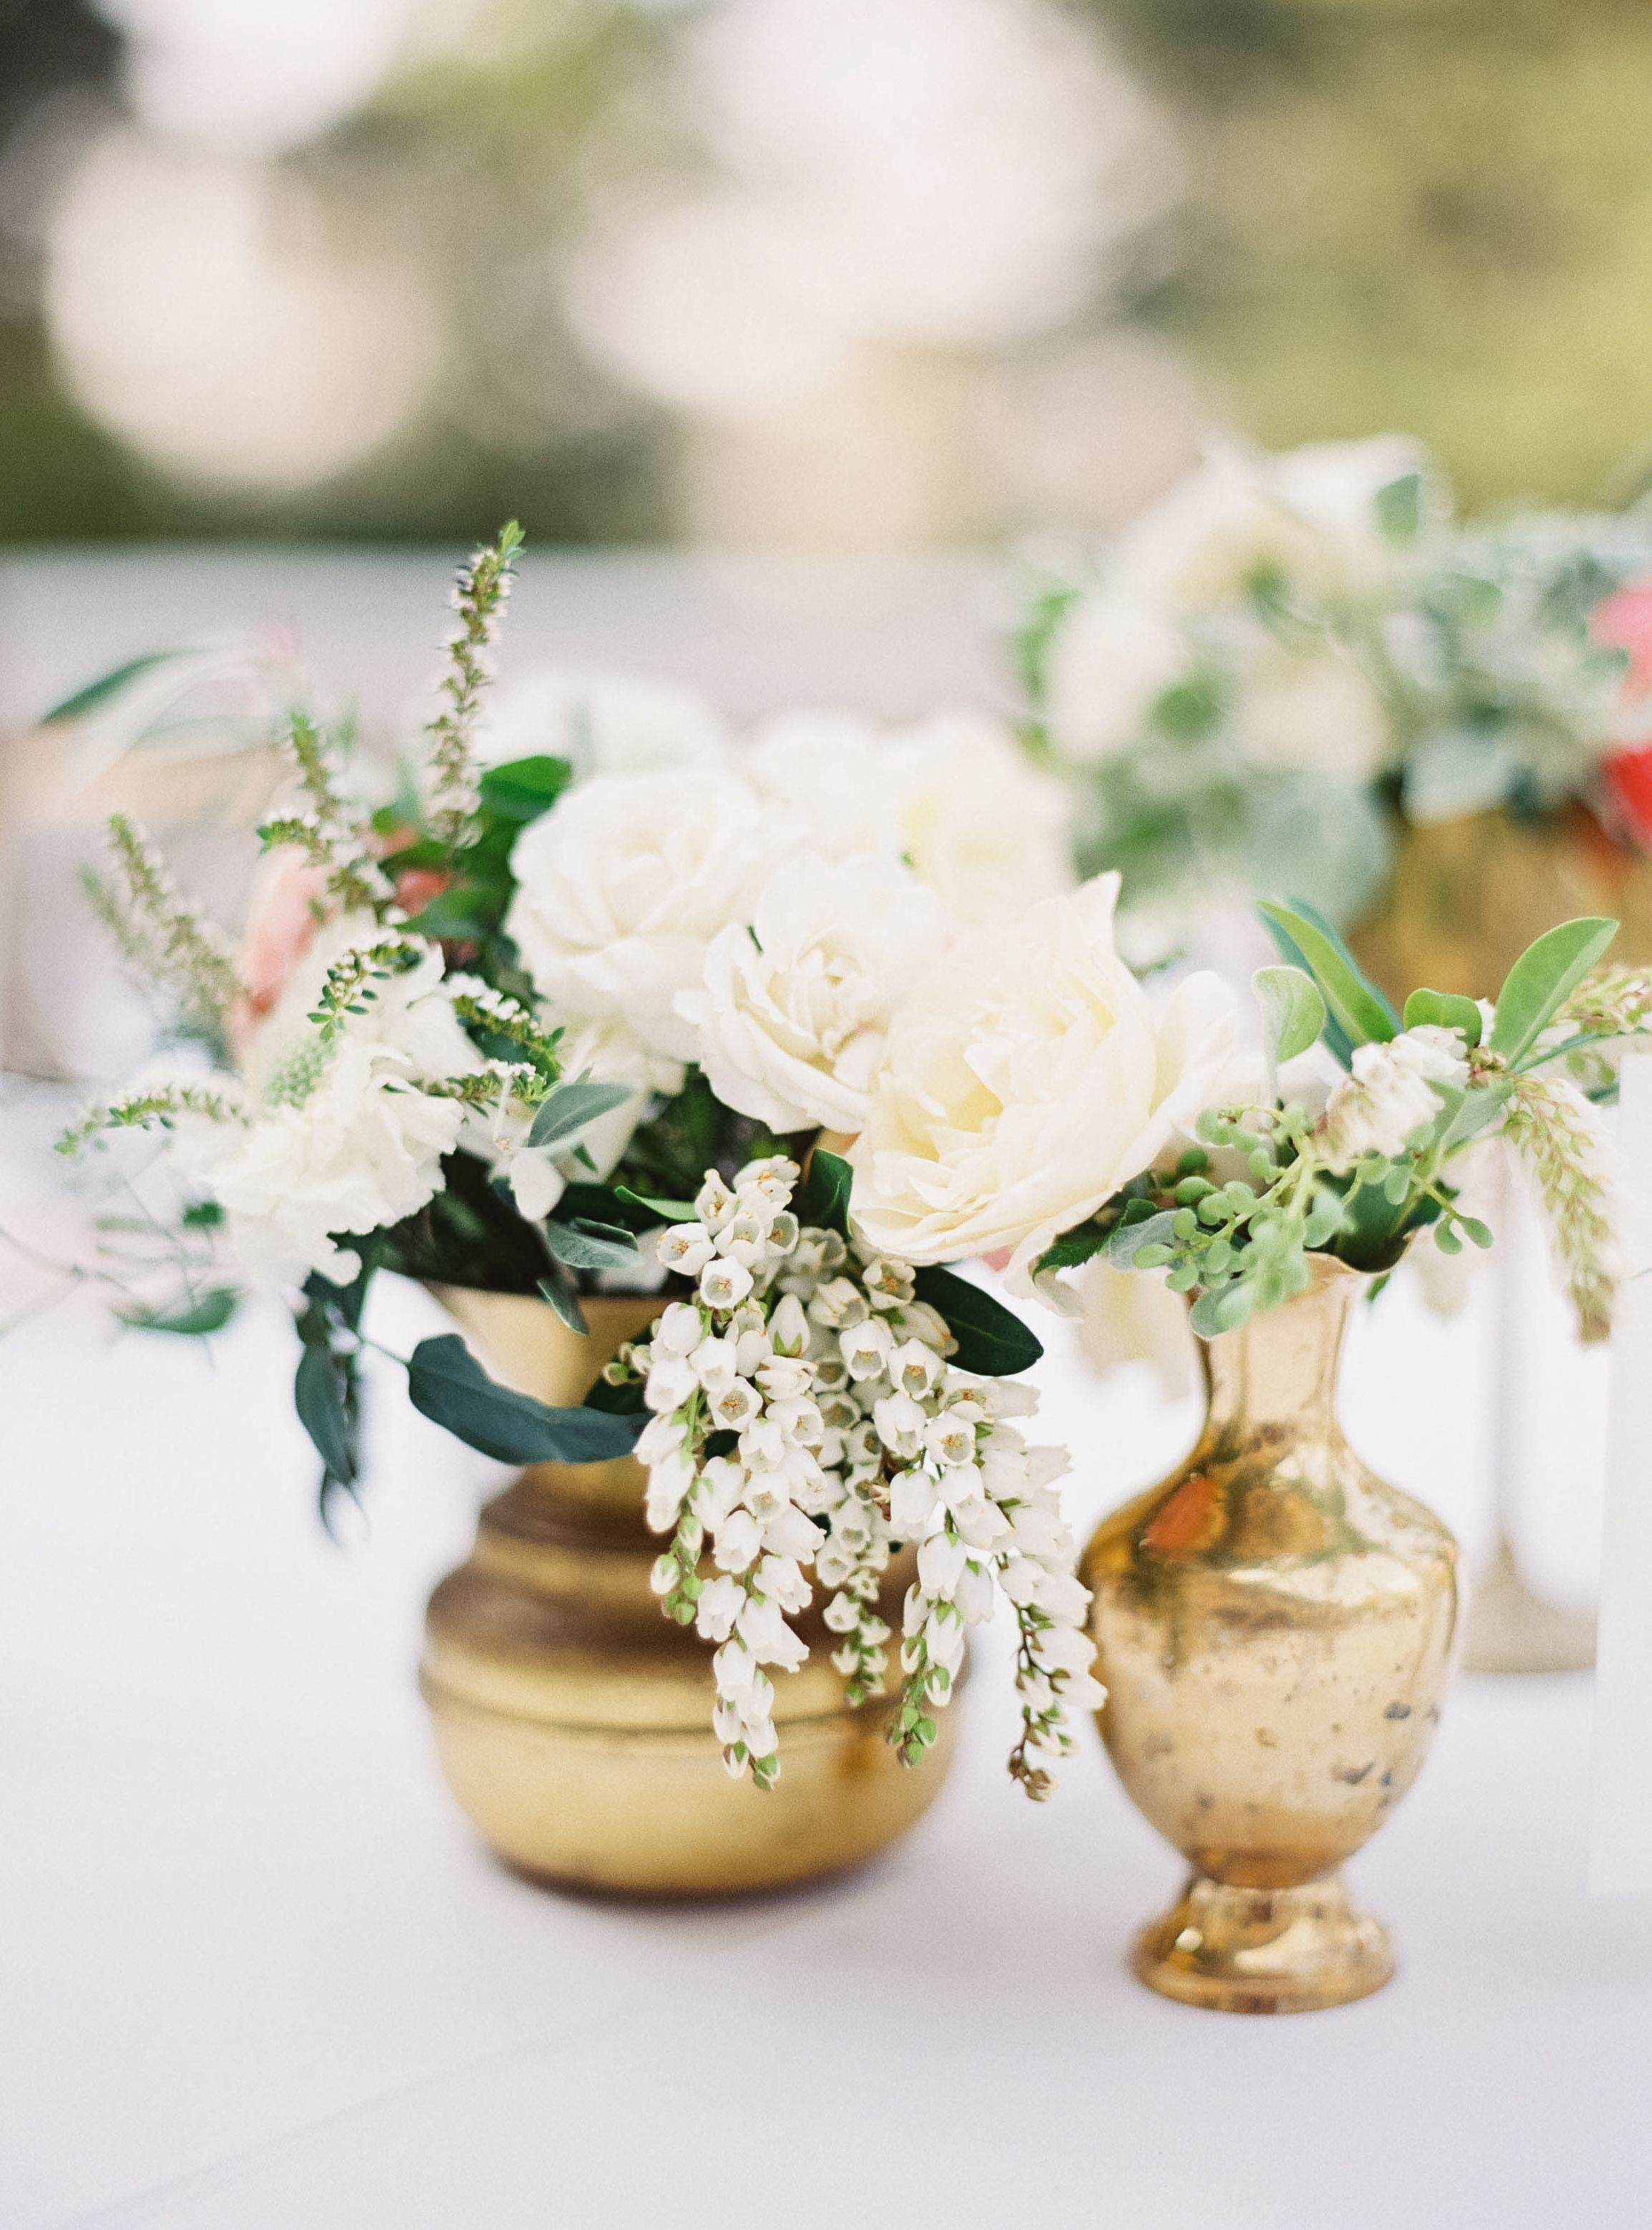 How to plan a beauty the beast inspired wedding pinterest wedding centerpieces english garden style wedding in california httpstylemepretty20160216english garden style wedding in california junglespirit Image collections